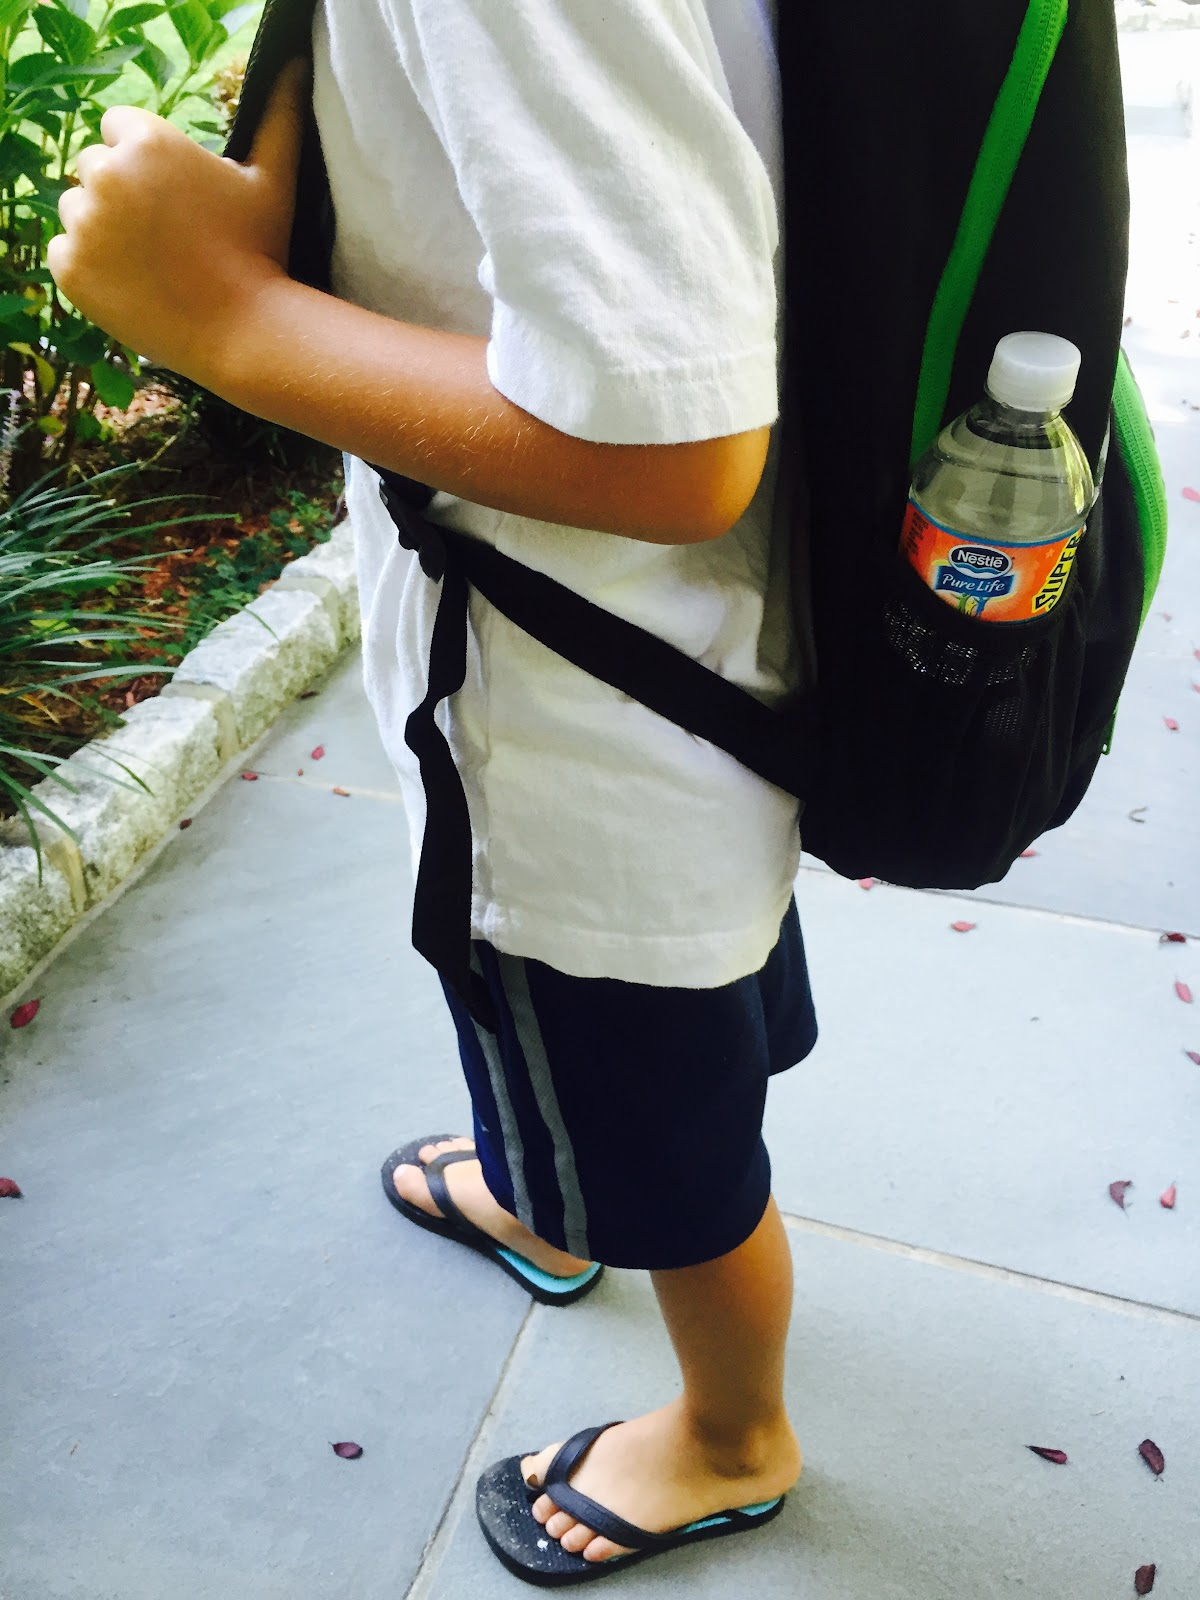 nestle pure life water backpack.jpg